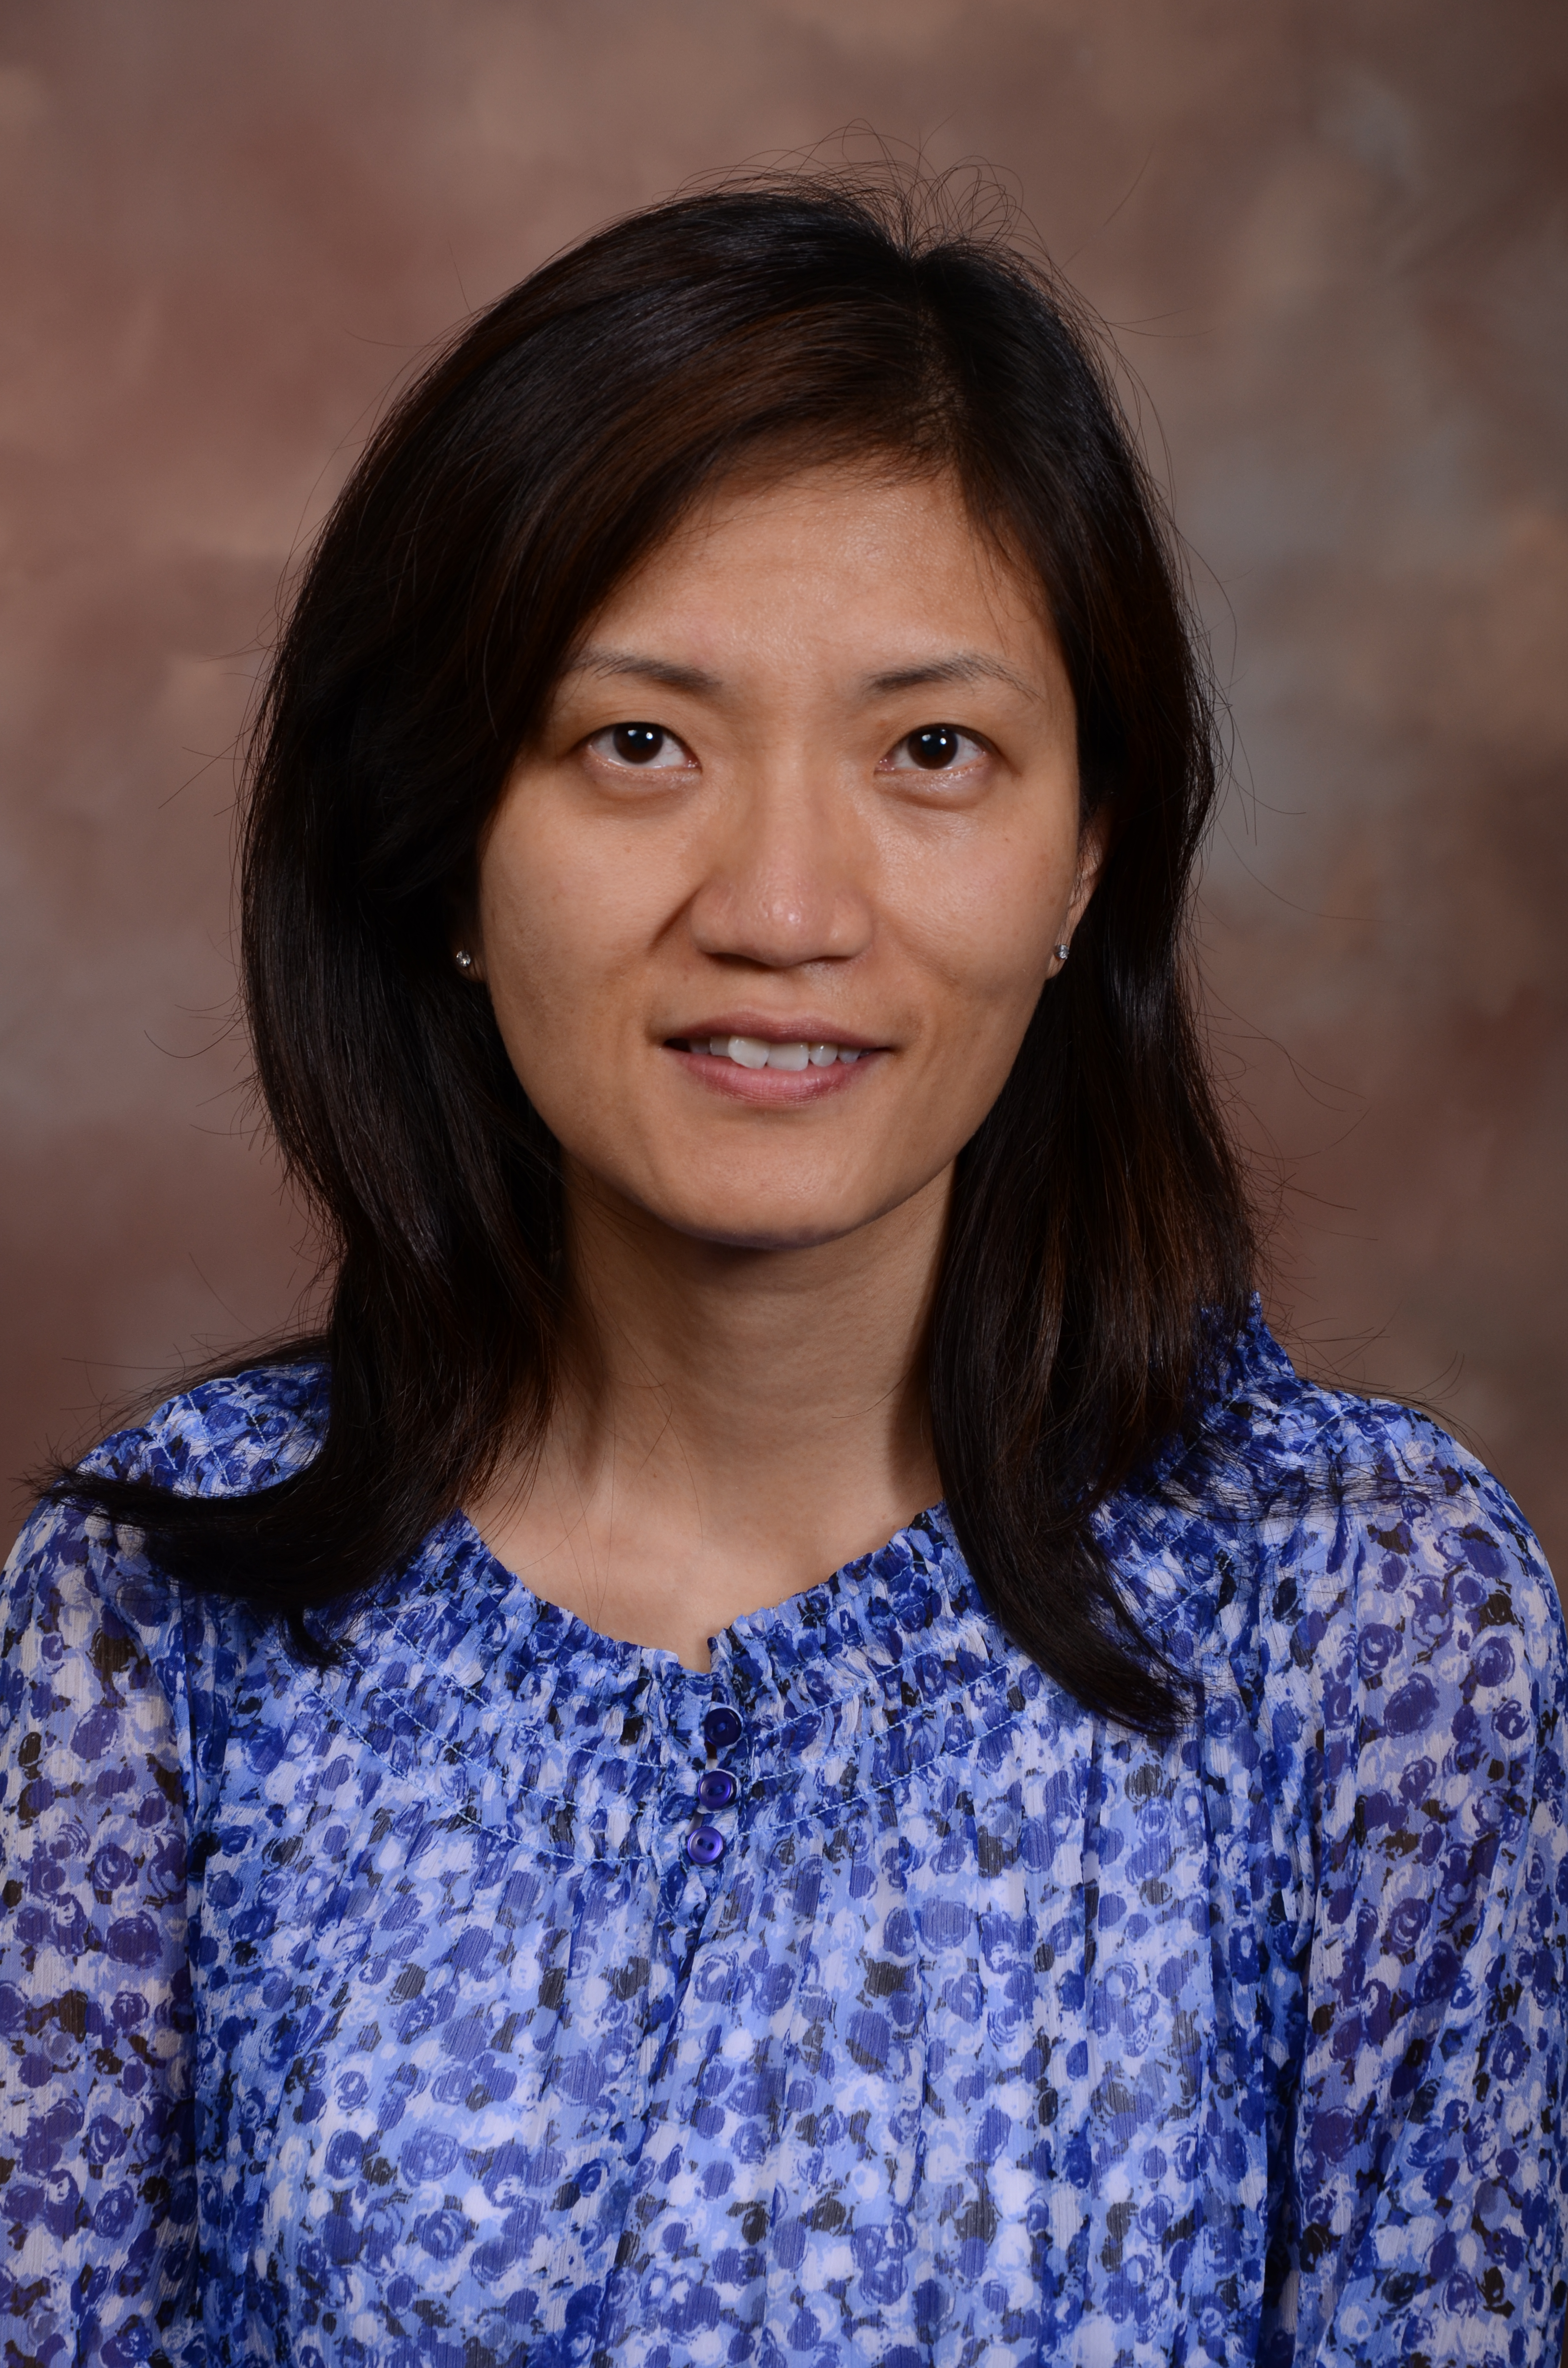 Dr. Jing Zhang to Participate in a Grant, Funded by NSF, to Fill Void in Research Experiences for College Students